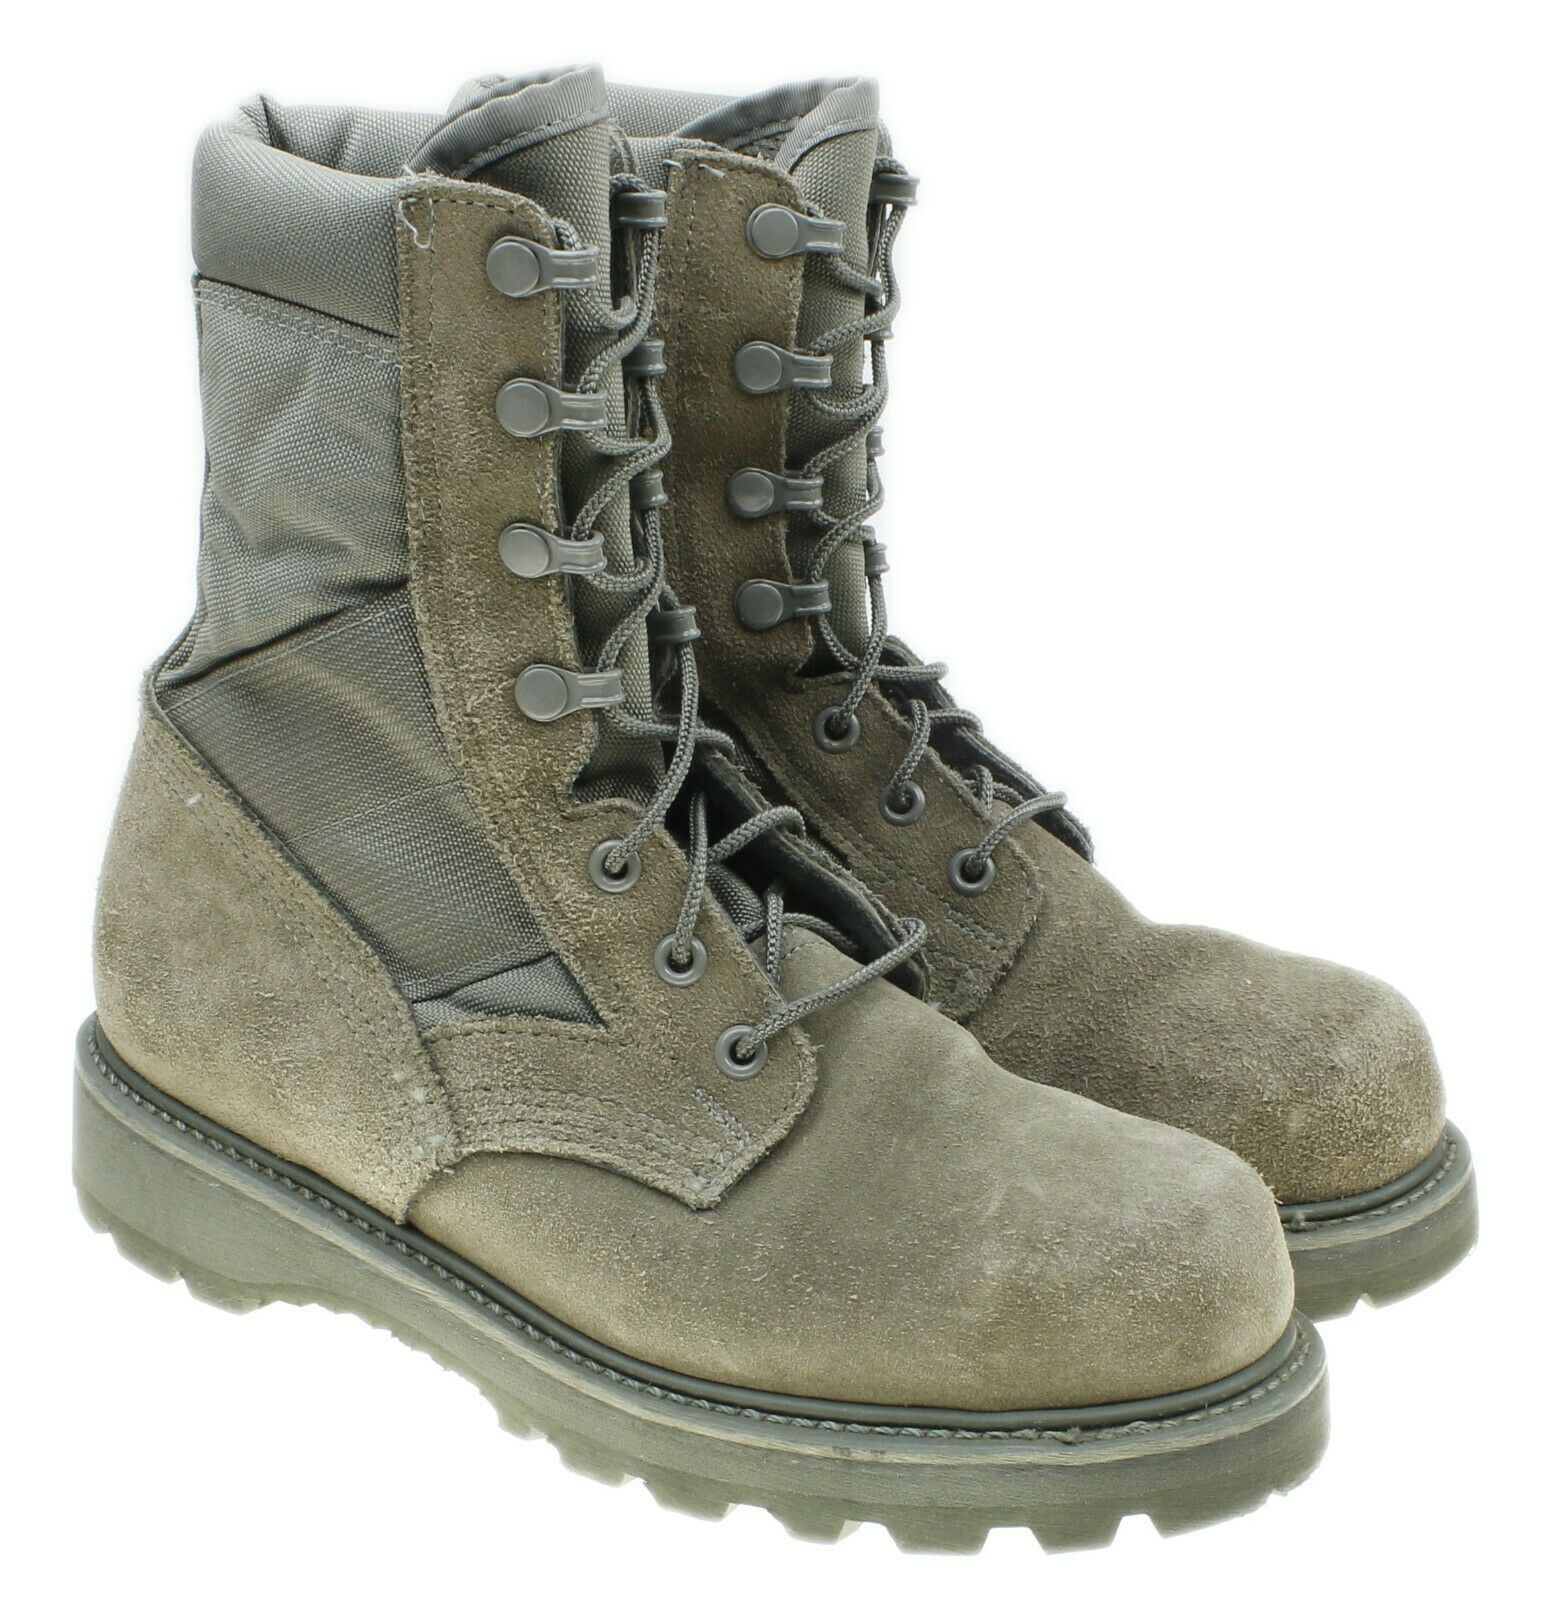 2f5ac6a50e1 UFCW Vibram 8430 Men's Military Boots and 50 similar items